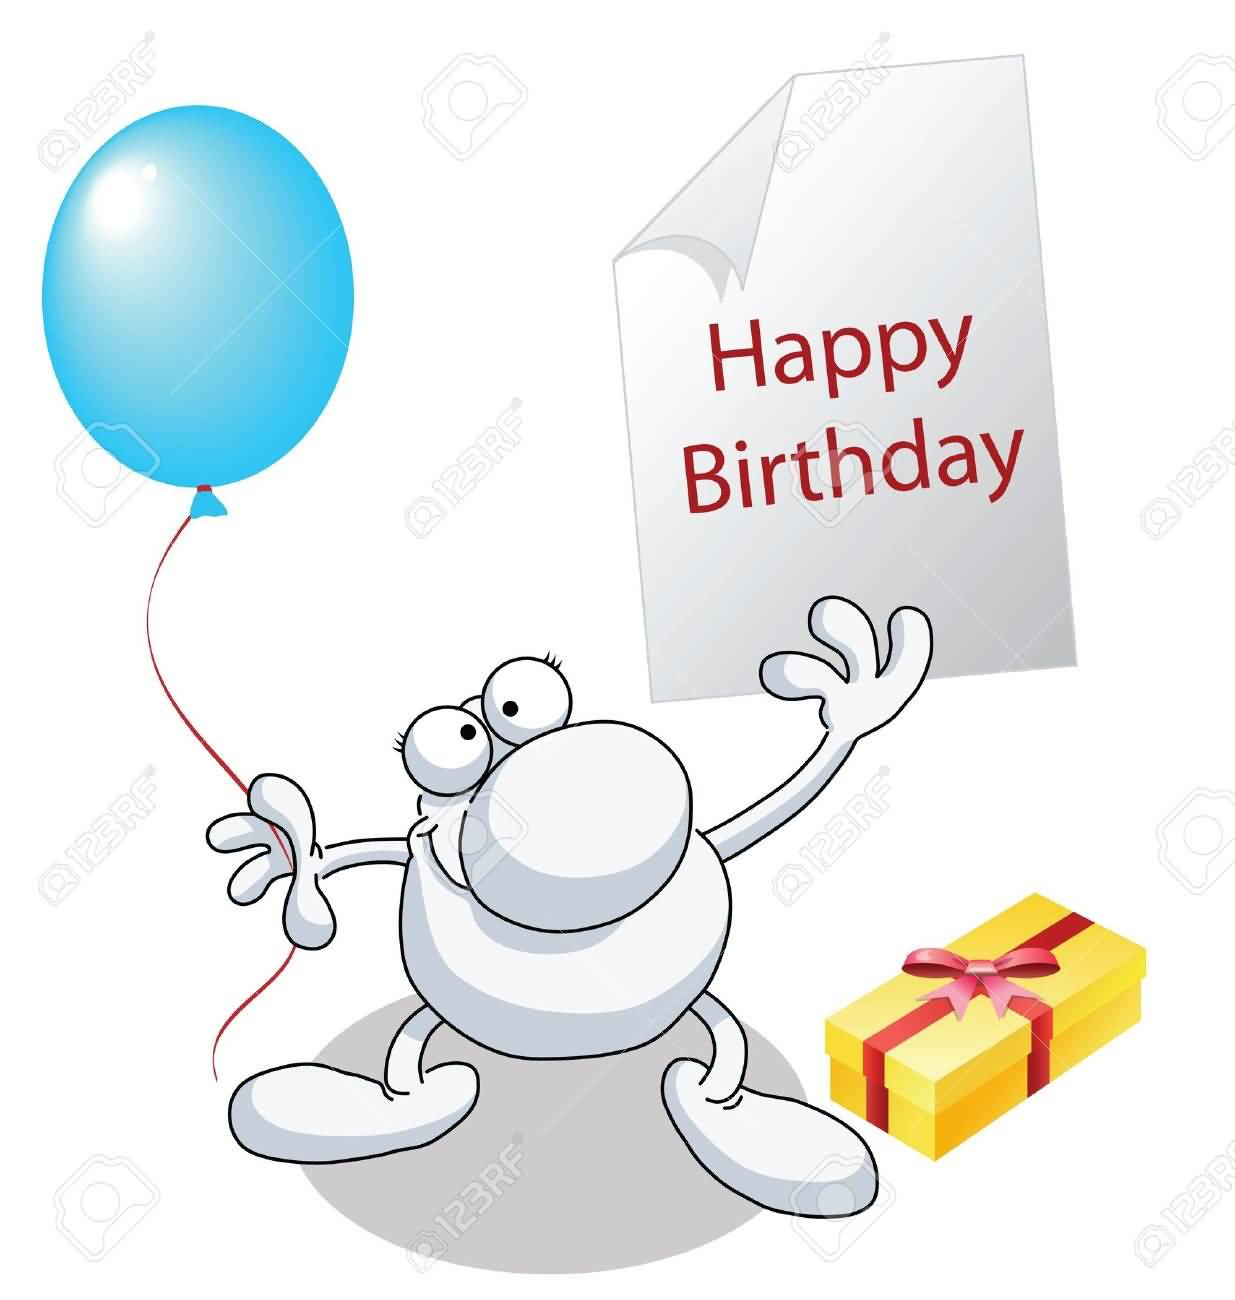 Funny Greetings Birthday Wishes For Man